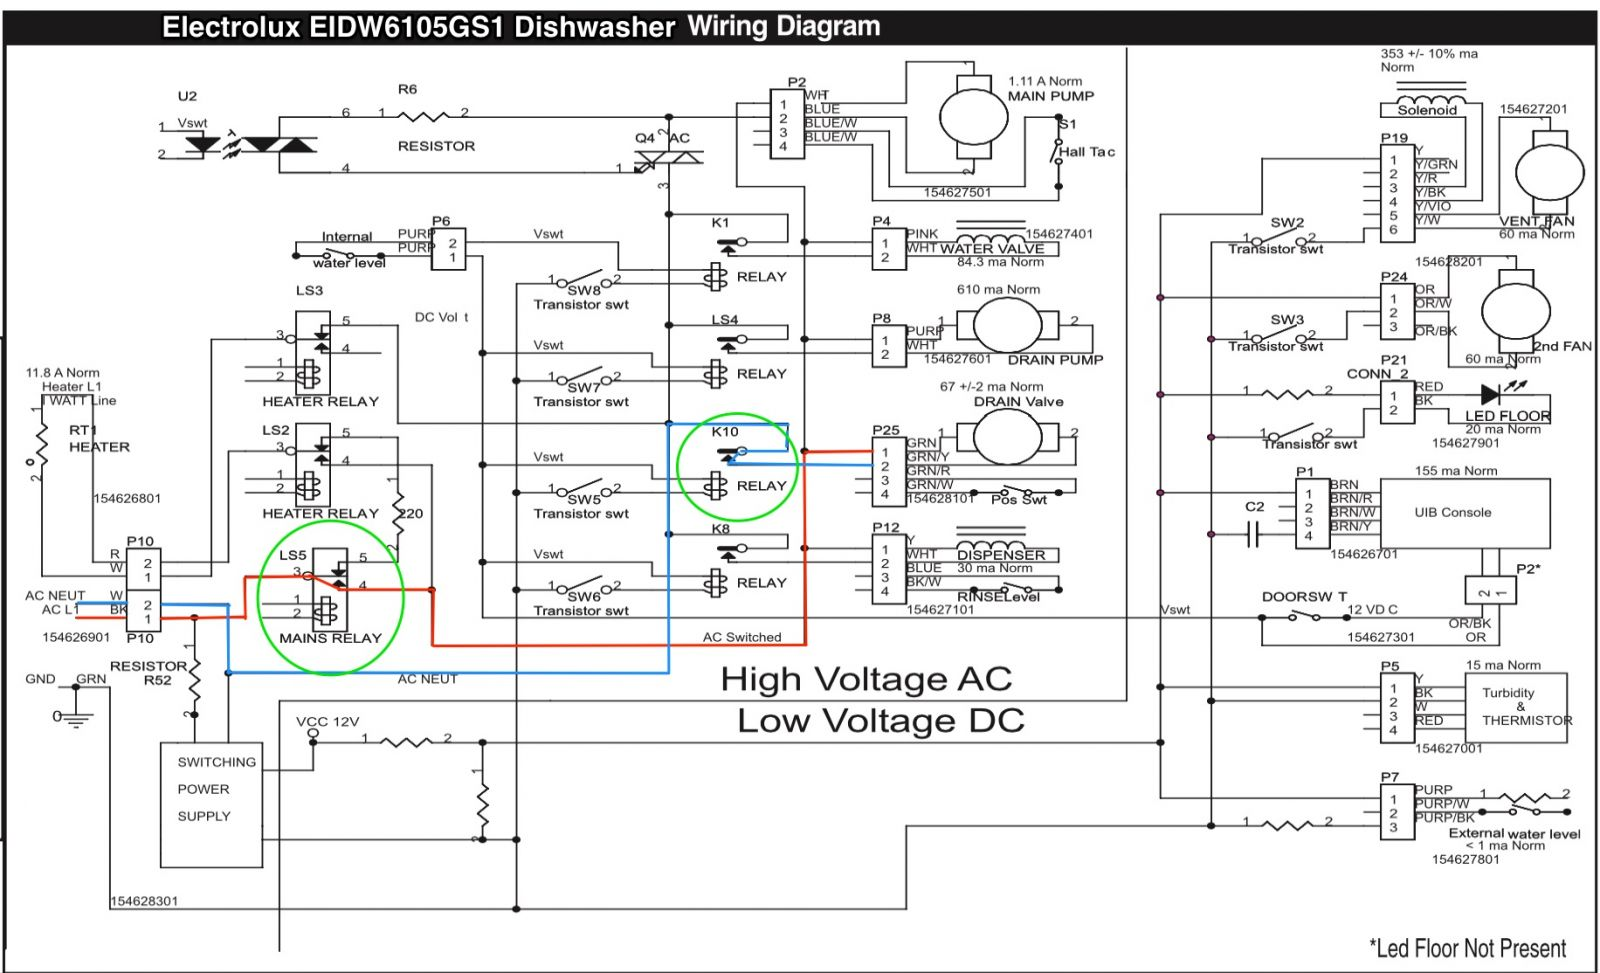 gallery_4_7_21756 electrolux eidw6105gs1 dishwasher wiring diagram the electrolux wiring diagram at creativeand.co